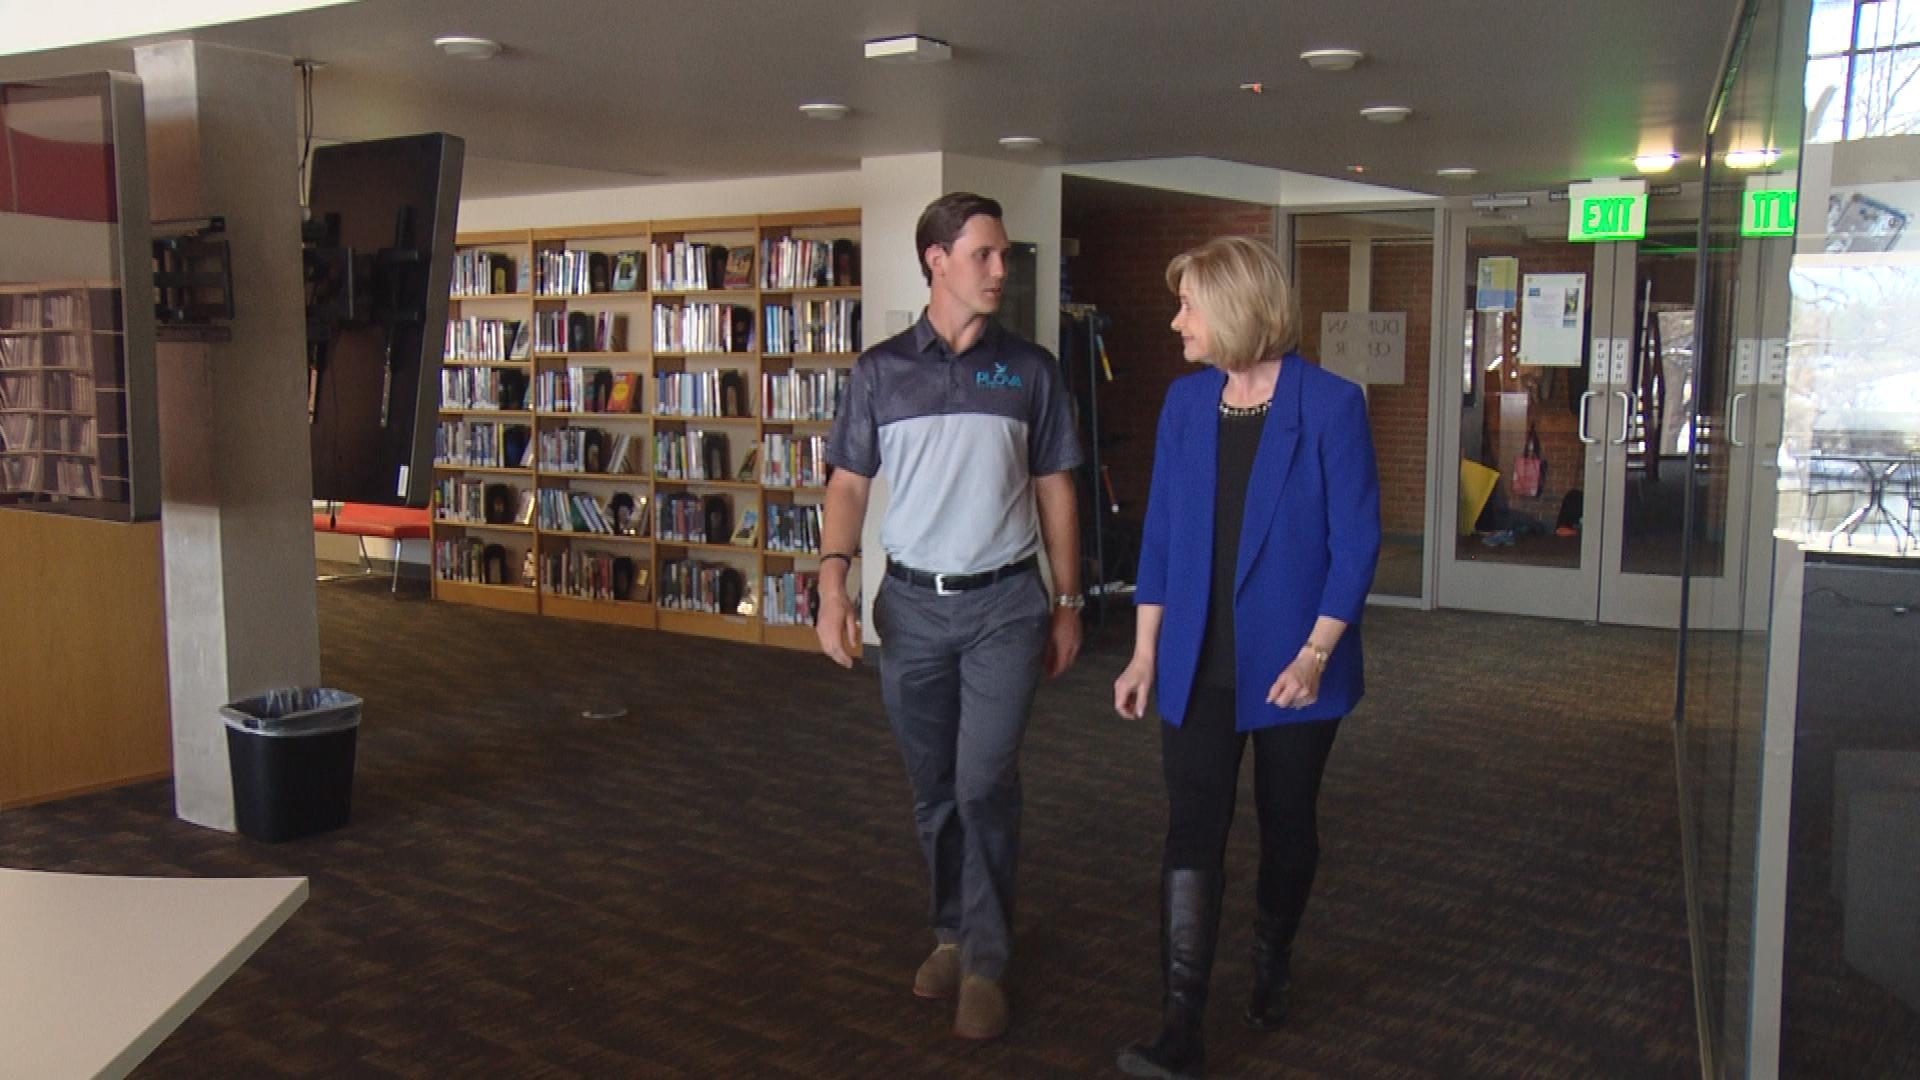 Cole T. Evans is interviewed by CBS4's Kathy Walsh (credit: CBS)